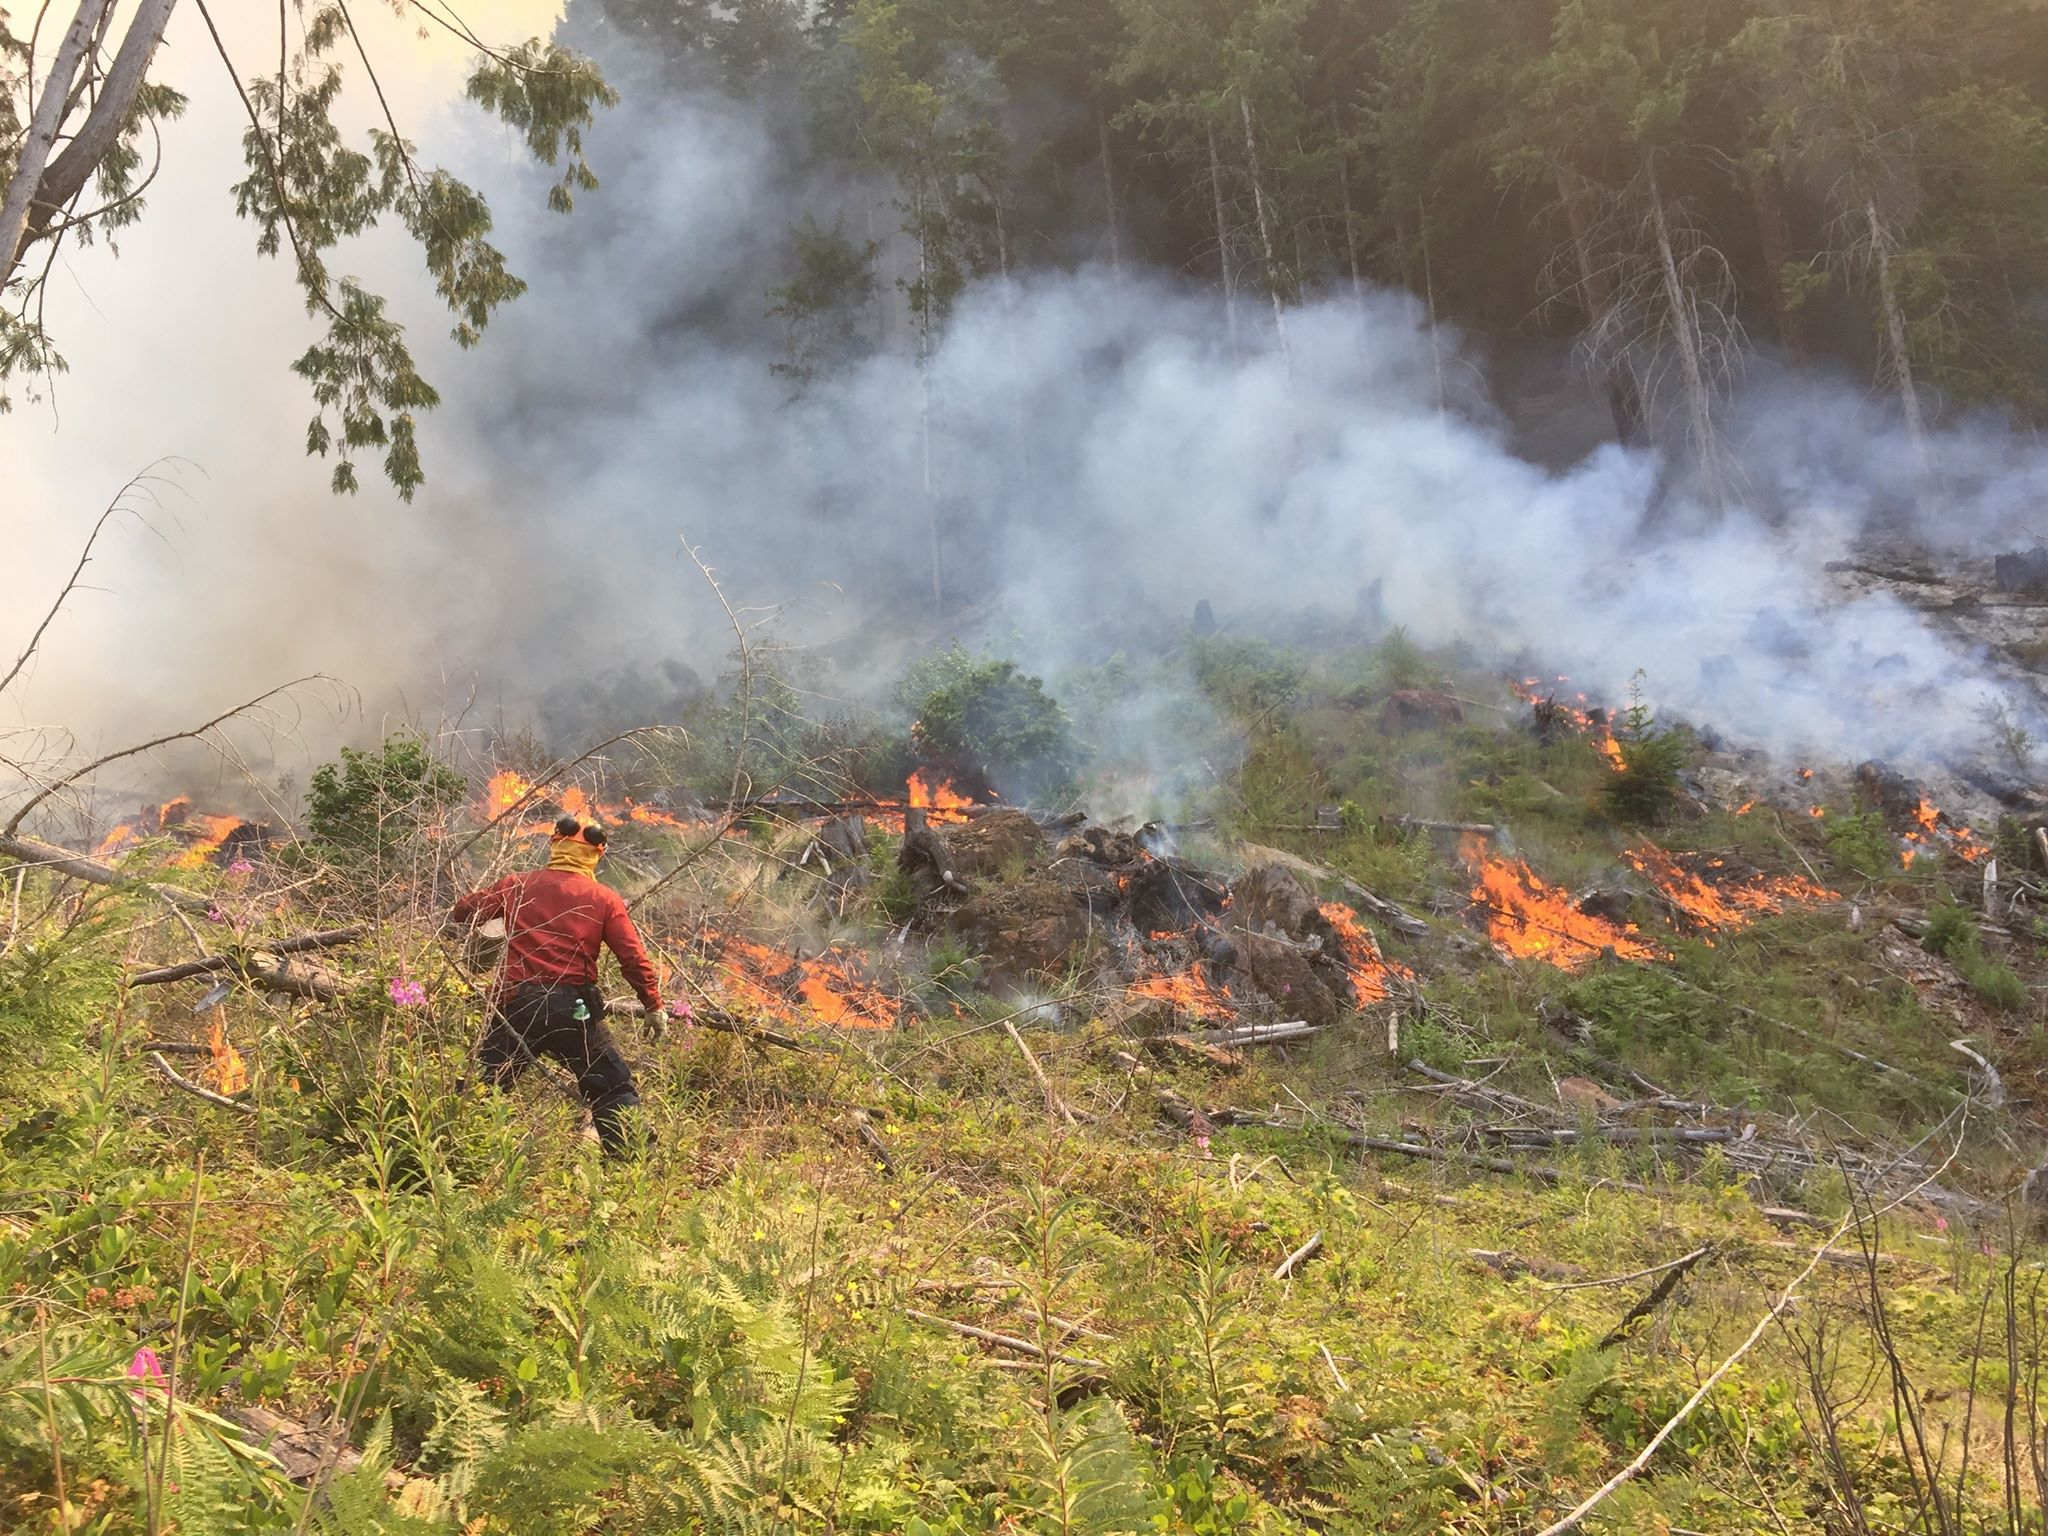 Rosales initiating a controlled burn to prevent wildfires from worsening.